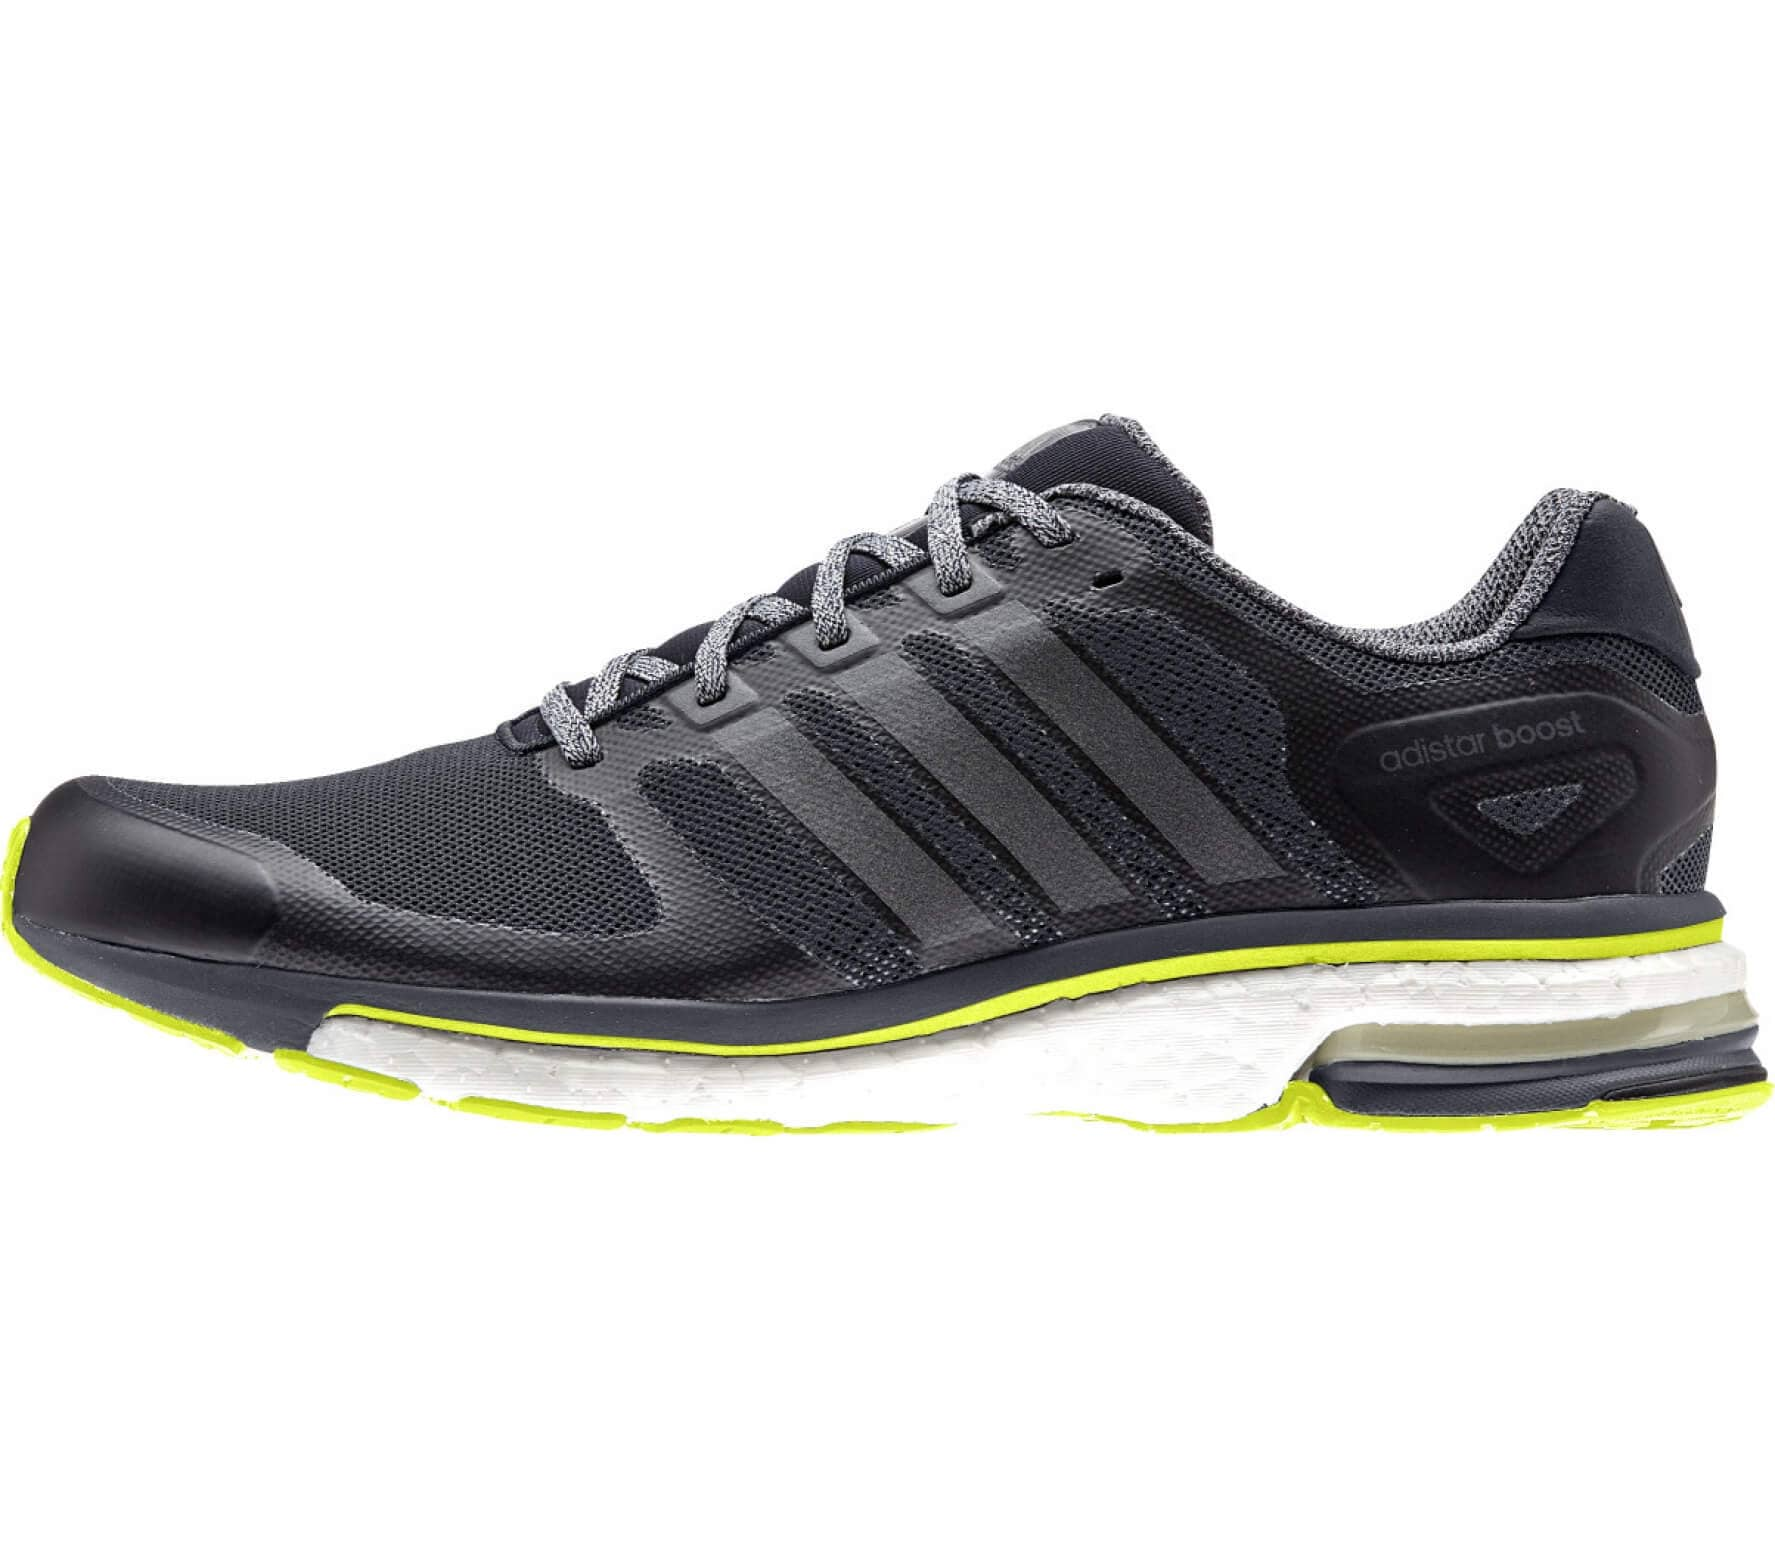 Adistar Boost Stability Running Shoes